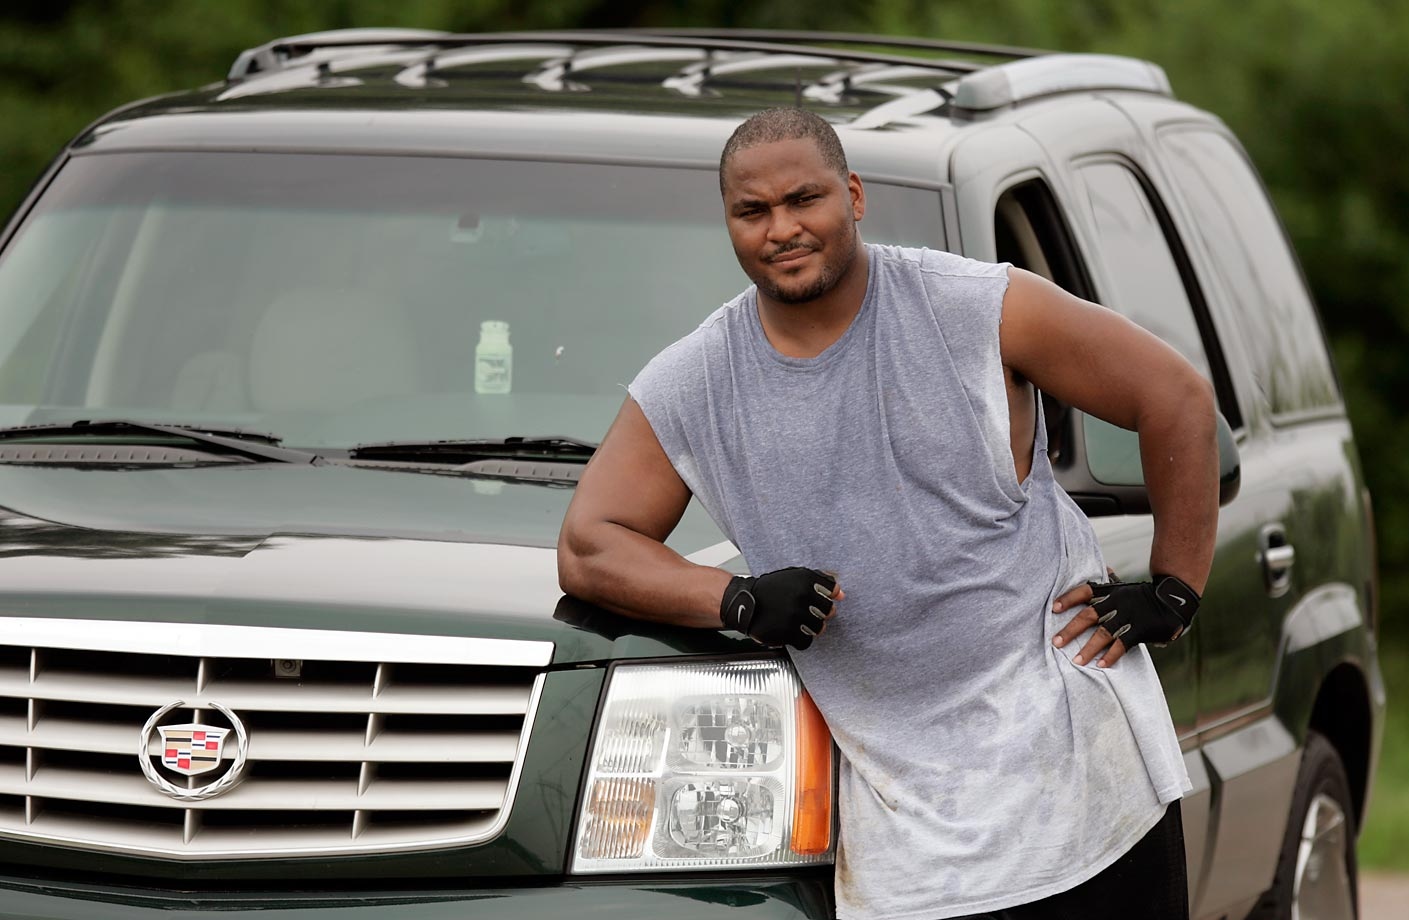 Walter Jones poses with his Cadillac Escalade, which he would push while exercising during the 2005 offseason.